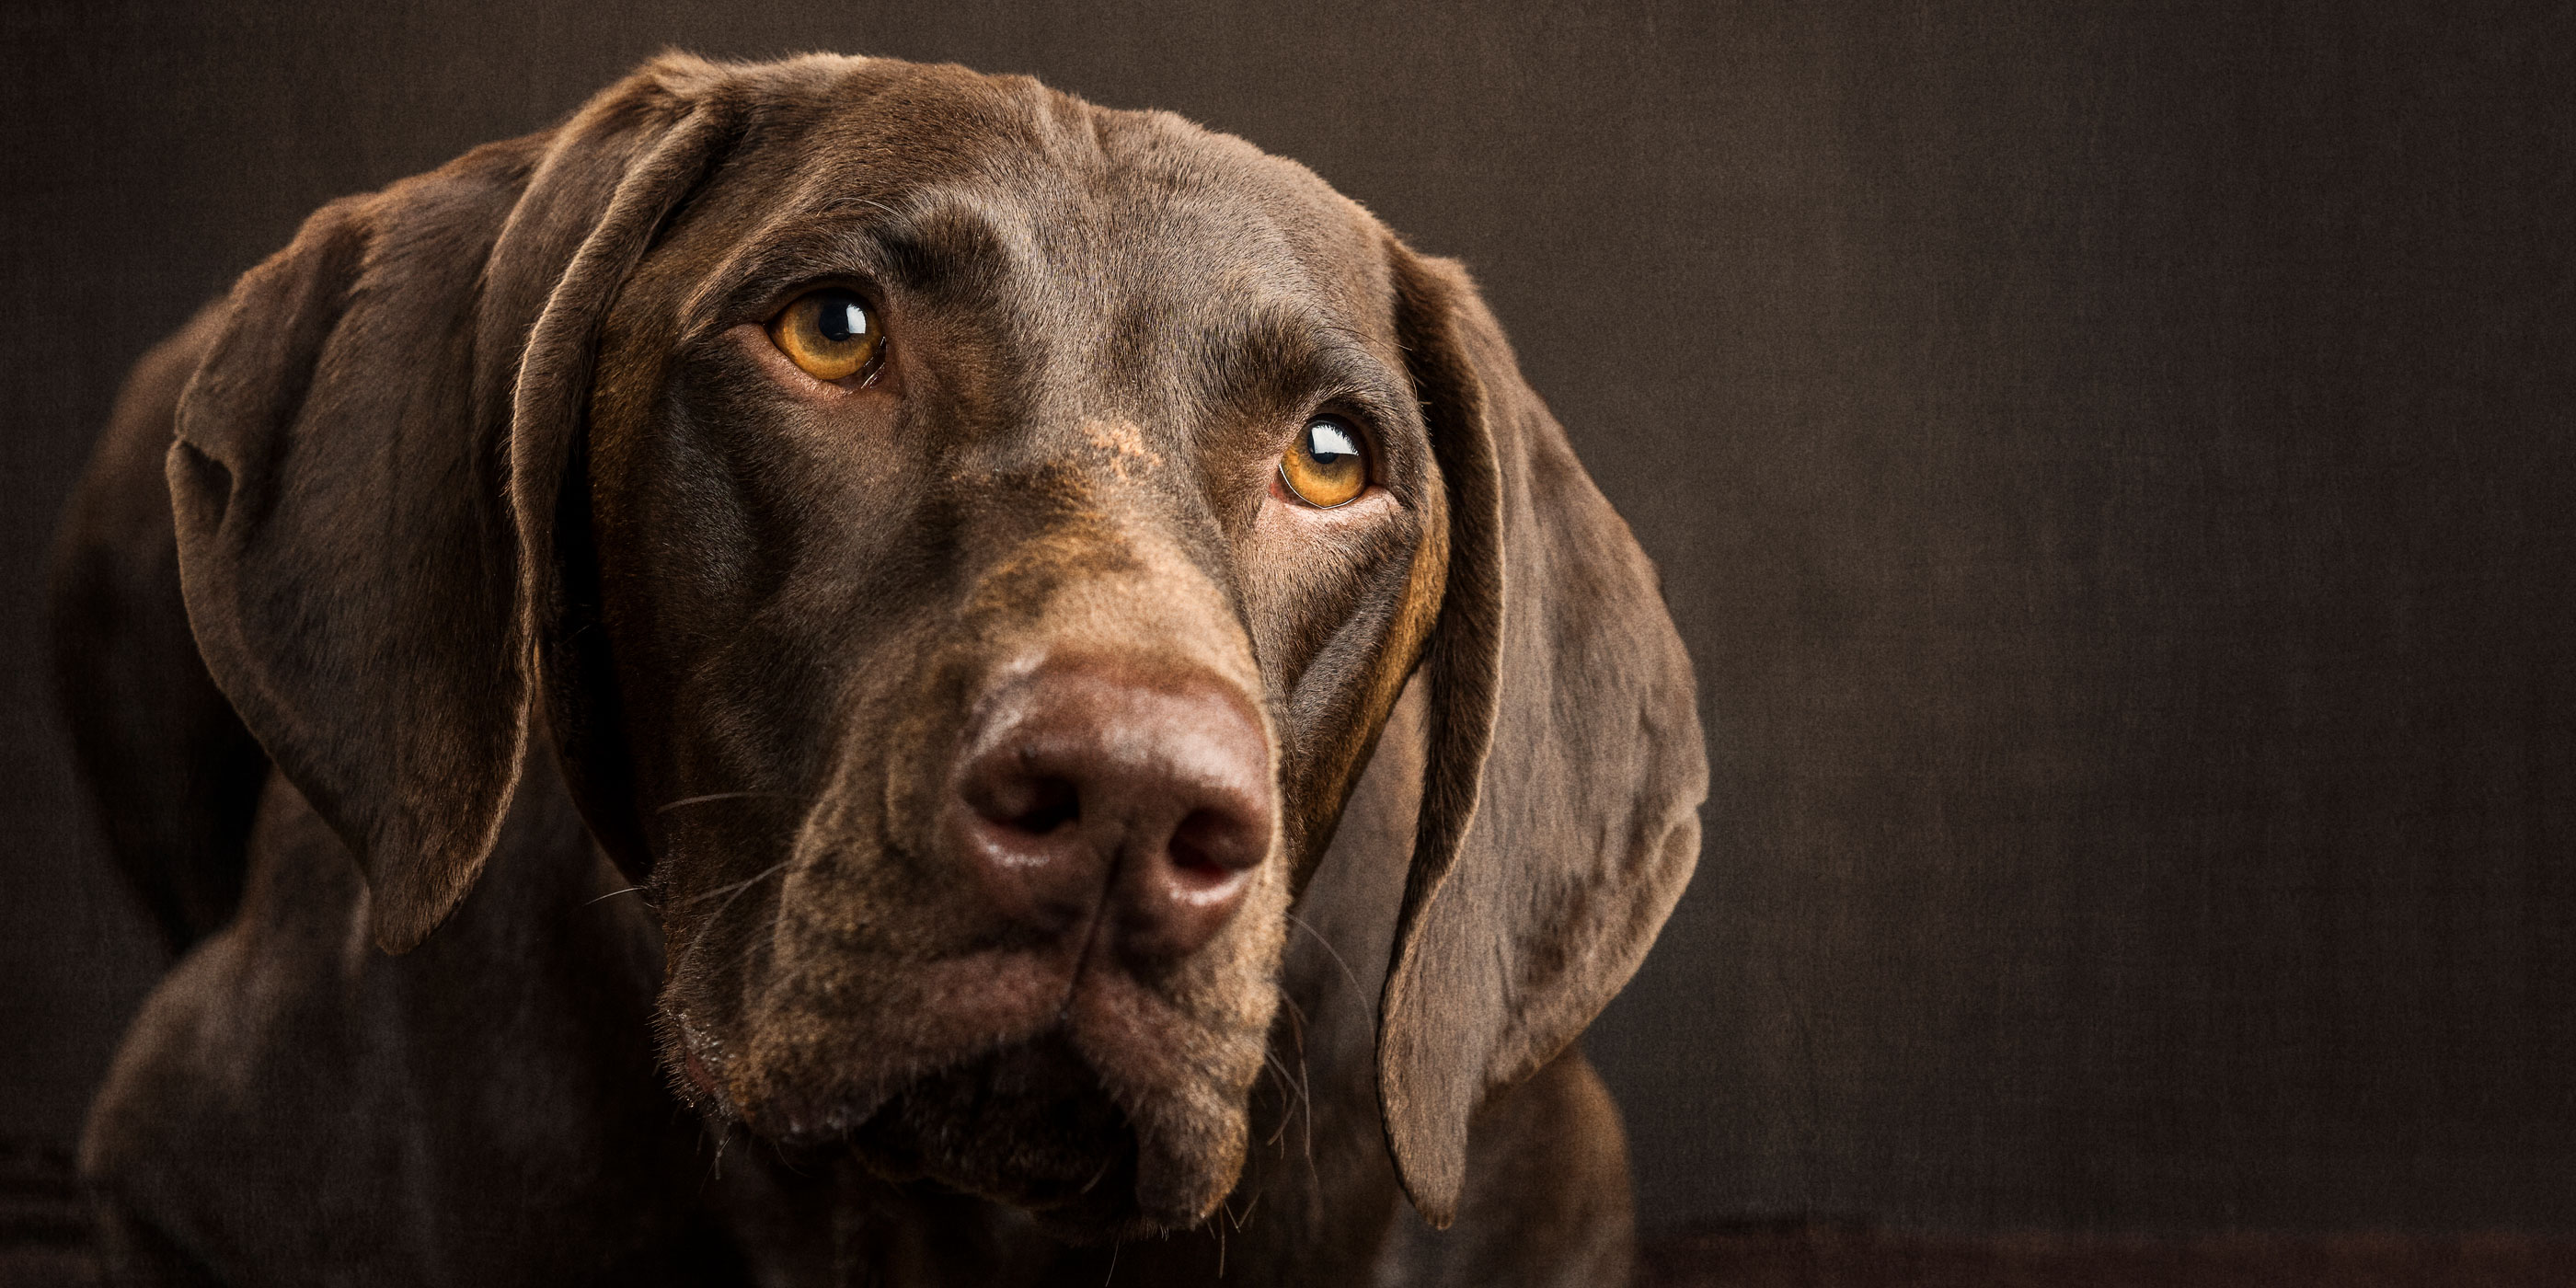 angelic faced german short haired pointer